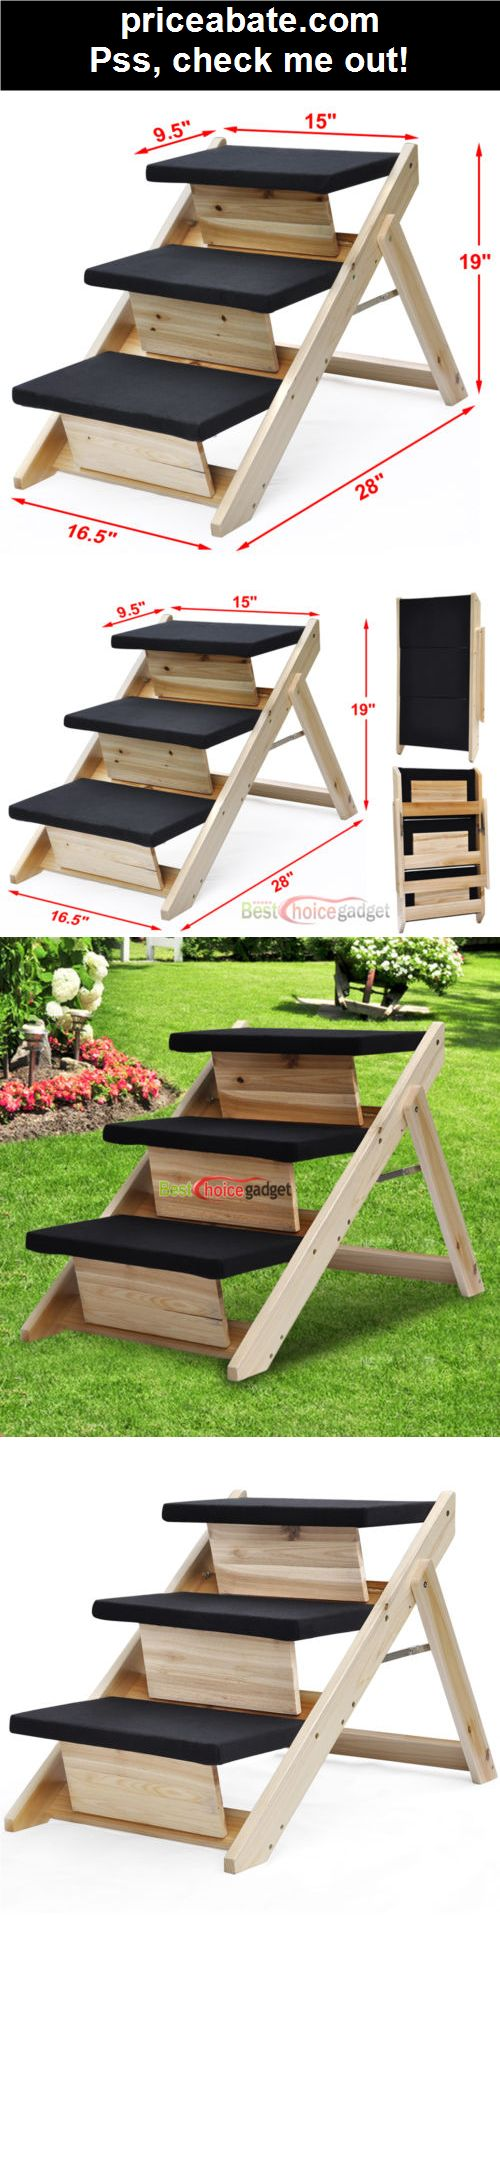 Folding 2-in-1 Pet Ramp & Stairs for Dogs Cats Pet Steps Ladder Animal Portable - #priceabate! BUY IT NOW ONLY $25.49